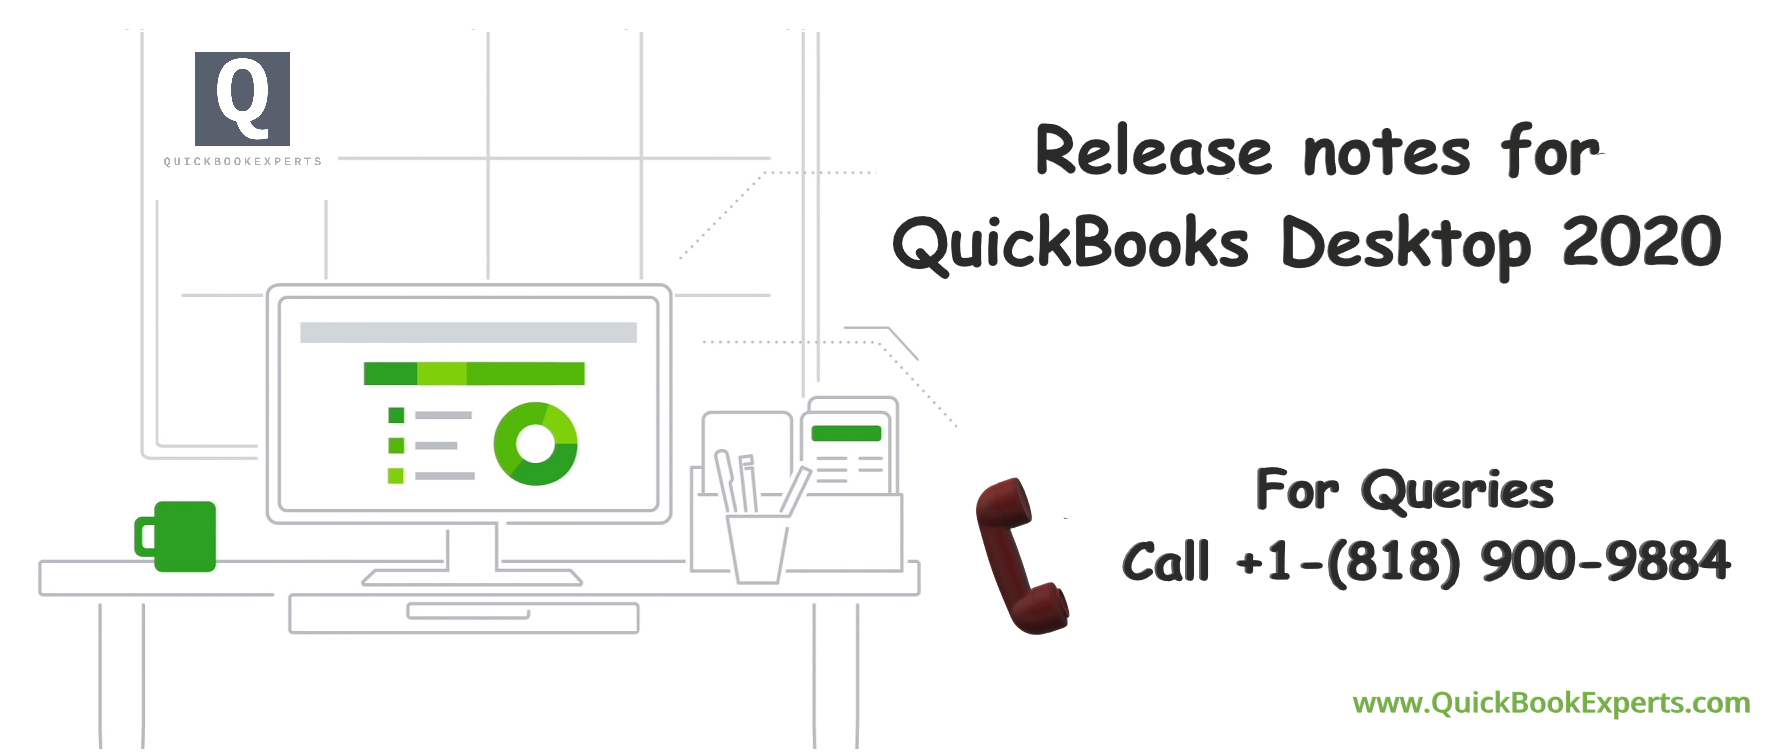 Release Notes for QuickBooks Desktop 2020